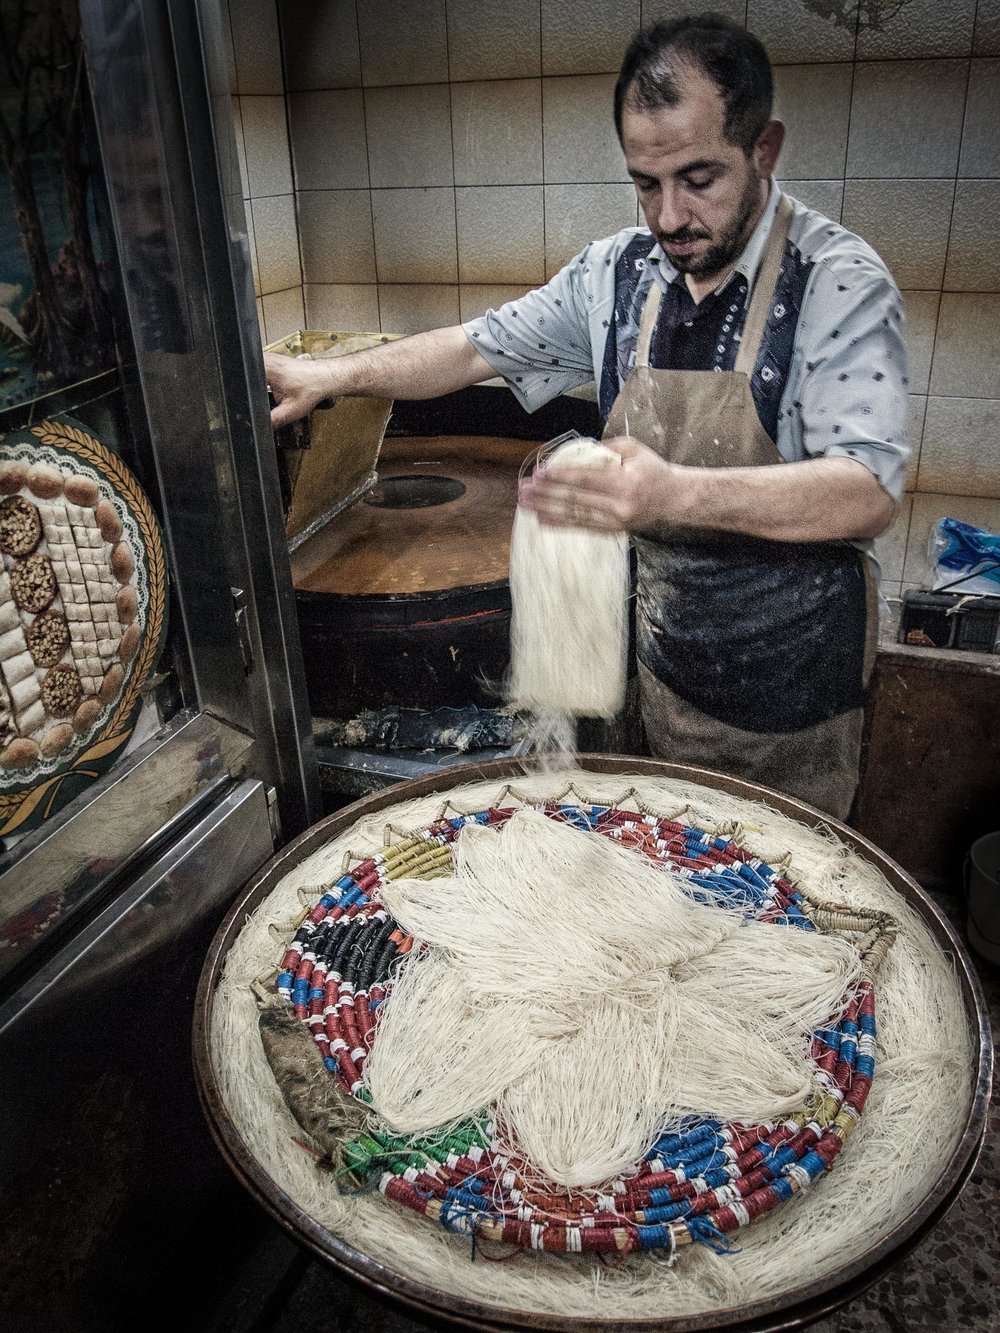 Stringy, sweat baklava in the making (Aleppo)